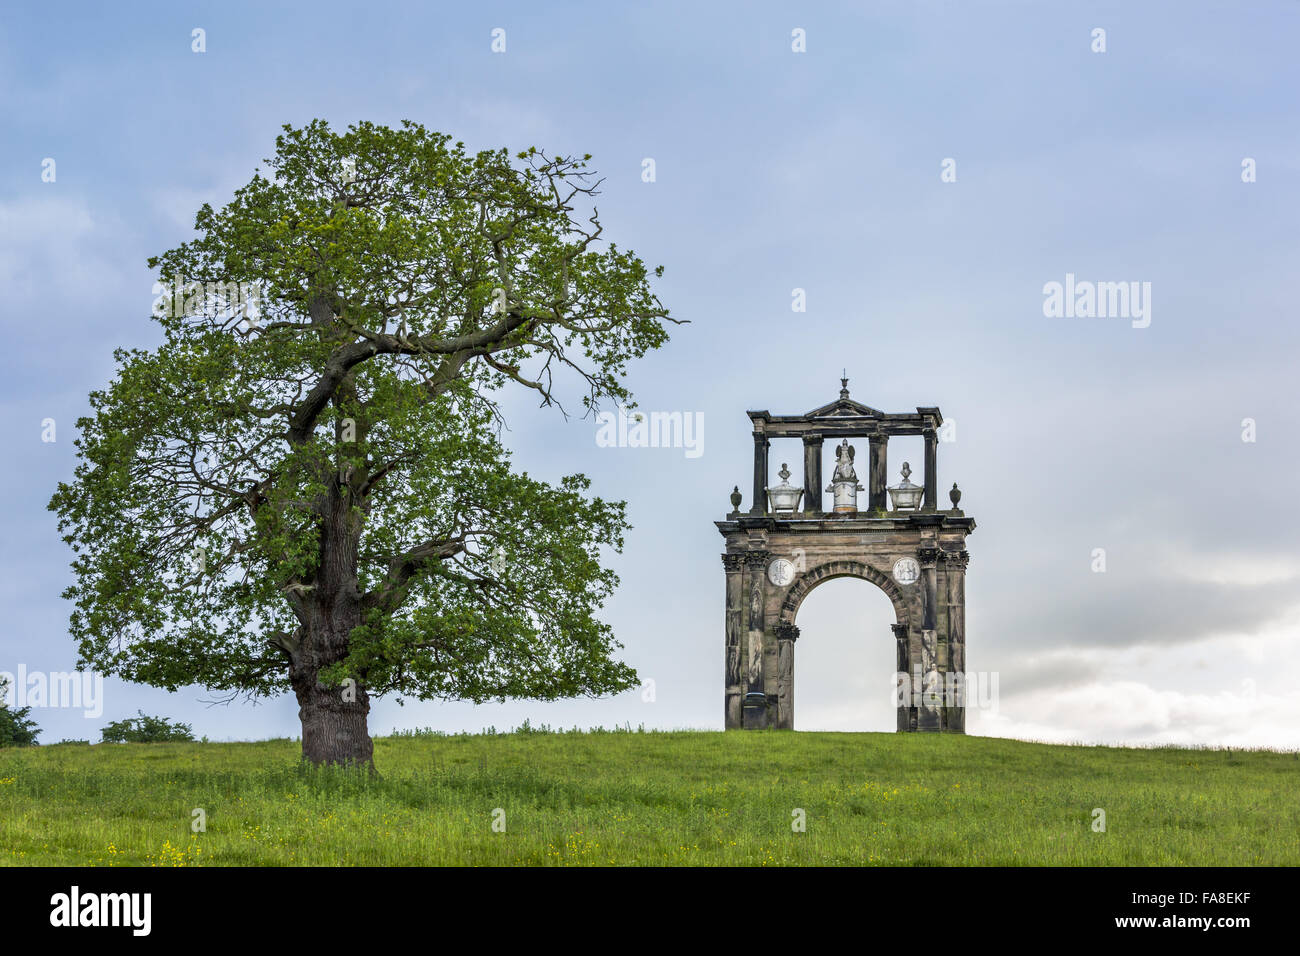 Triumphal Arch in June on the Shugborough Estate, Staffordshire. This is a copy of the Arch of Hadrian in Athens - Stock Image